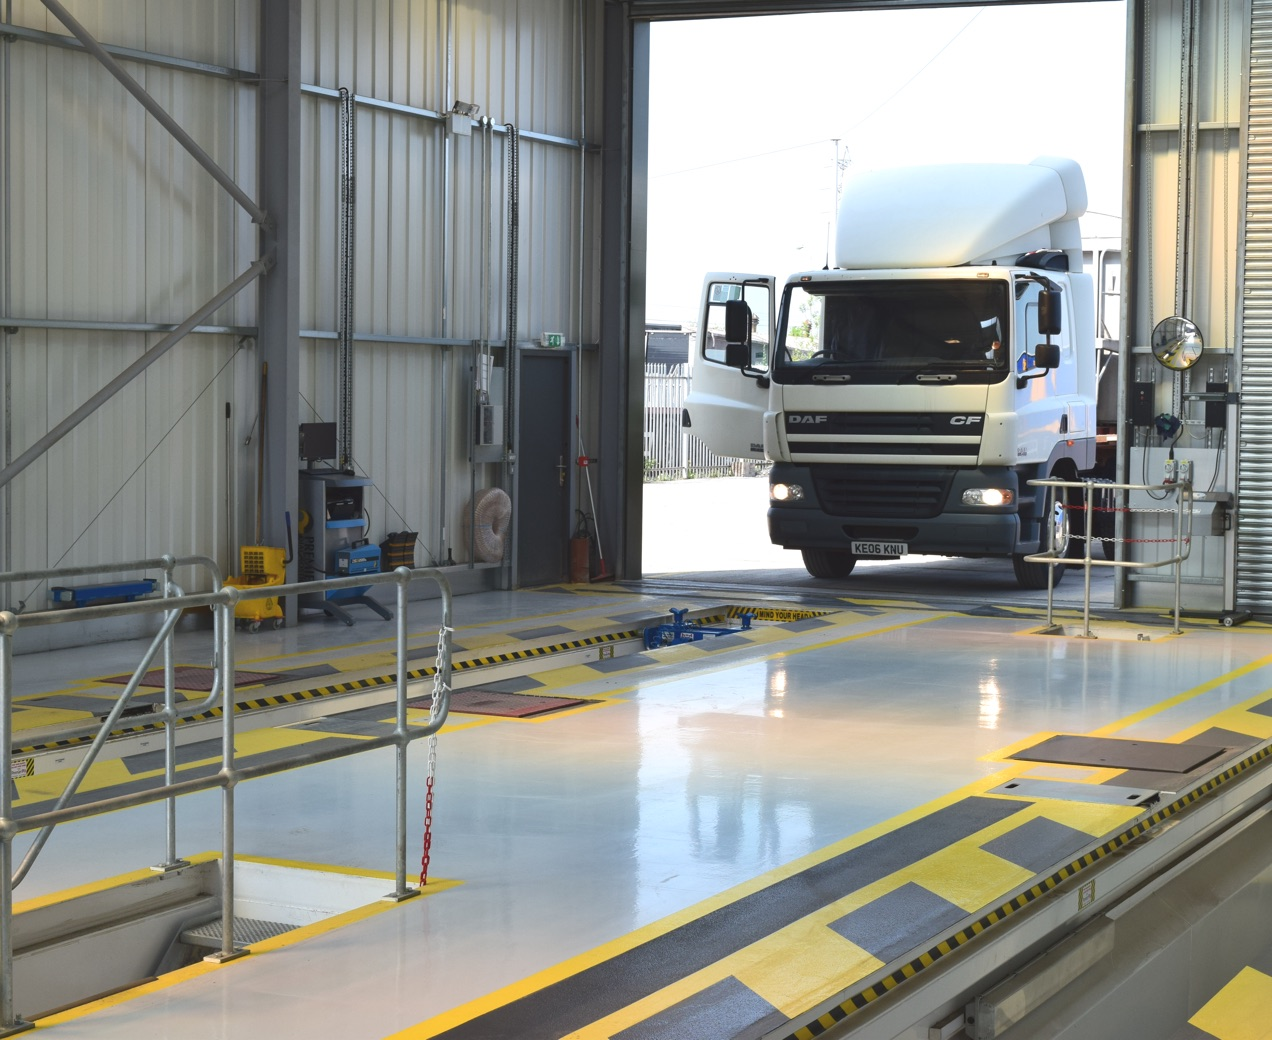 HGV Drive through MOT testing center